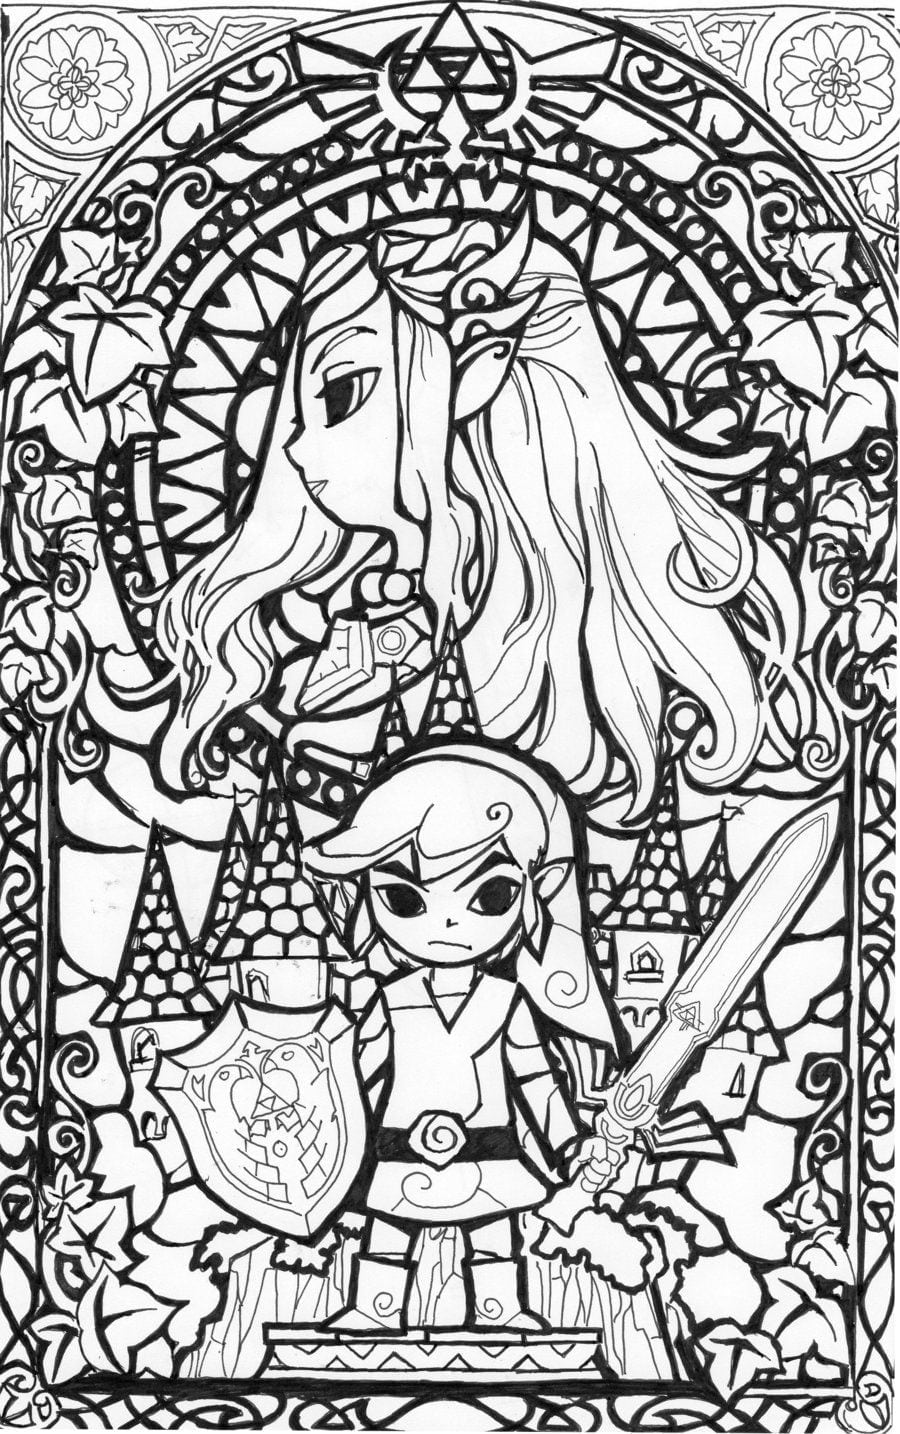 Awesome Stained Glass Zelda Coloring Page! Gonna Try This In